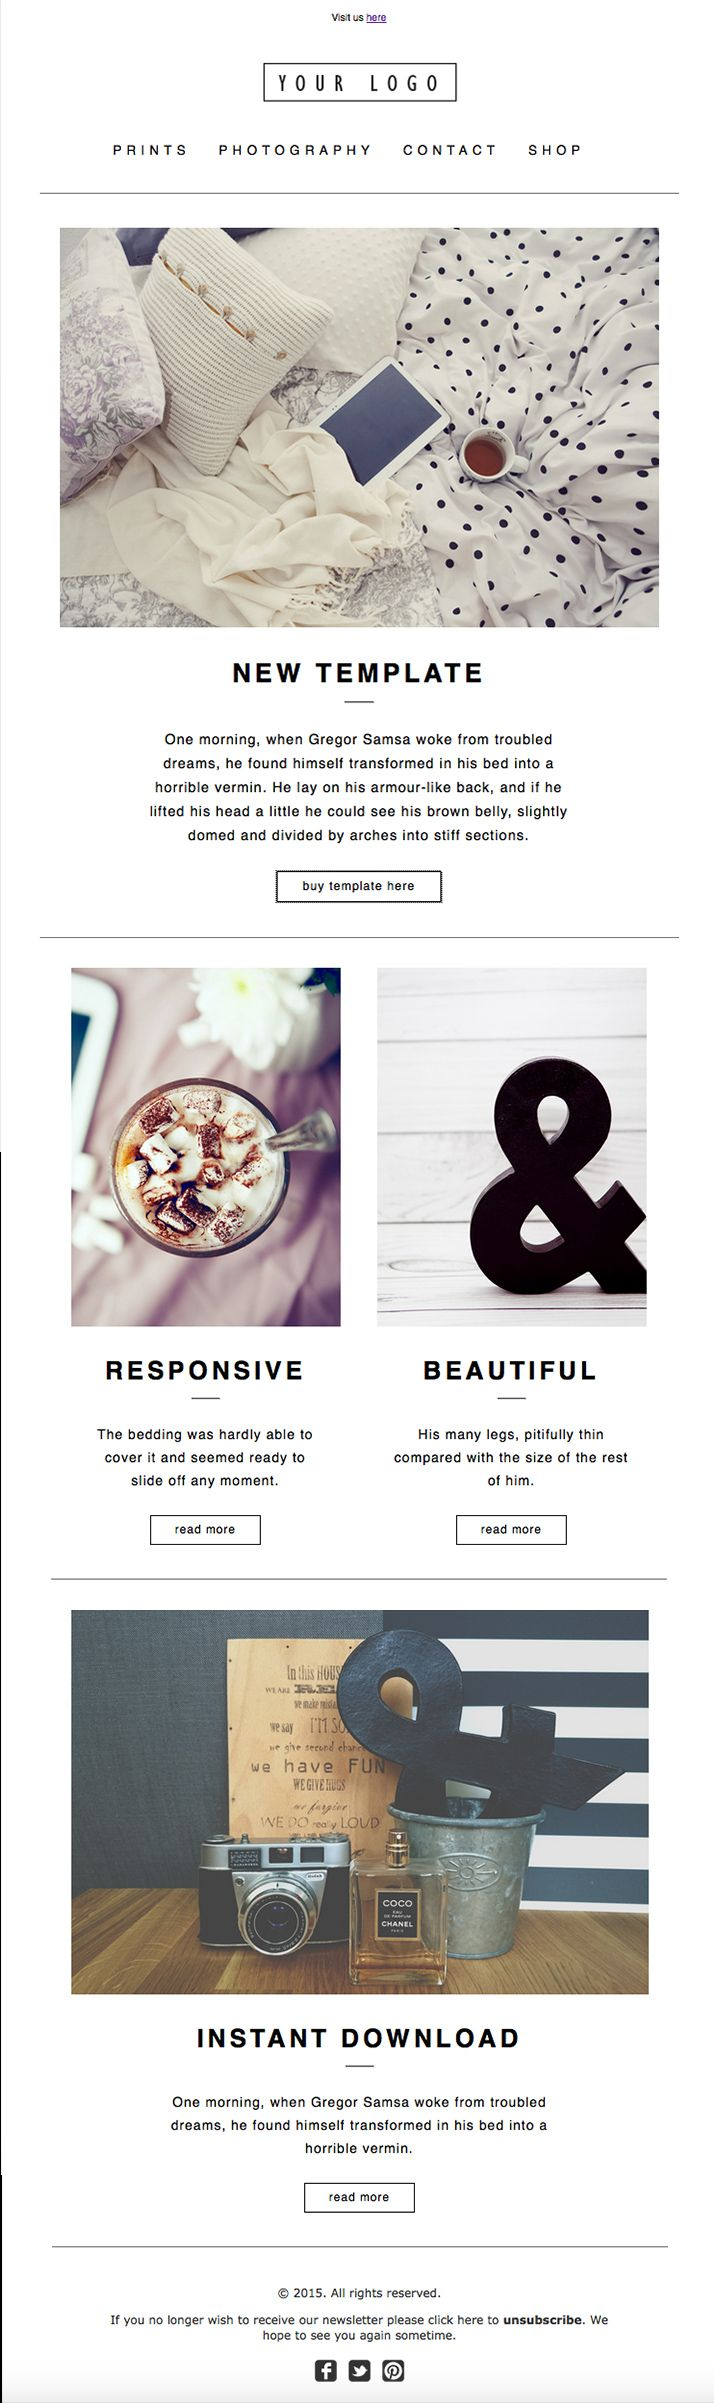 best newsletter design ideas on pinterest newsletter layout